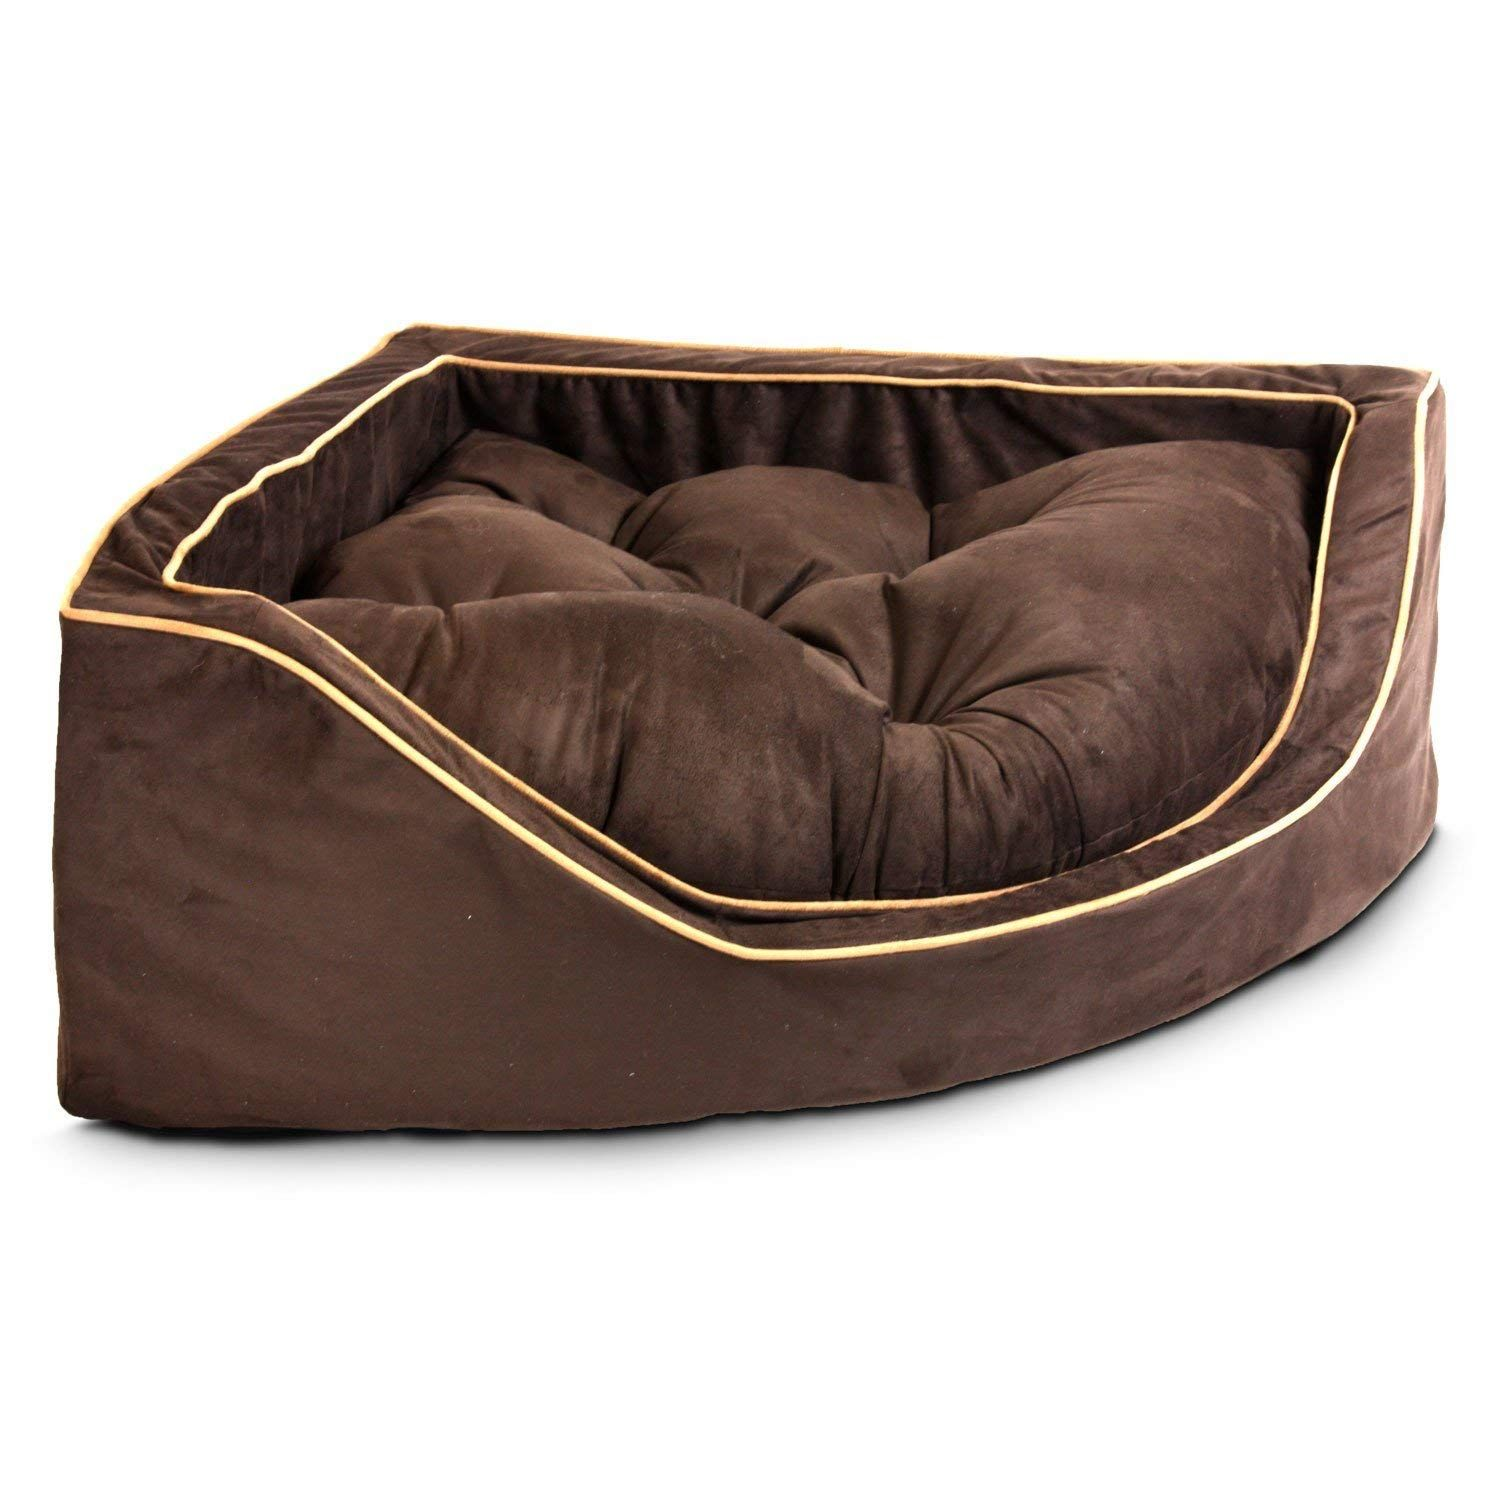 Amazing 7 Luxury Dog Sofa Beds That Are Affordable Stuff For Dogs Download Free Architecture Designs Fluibritishbridgeorg